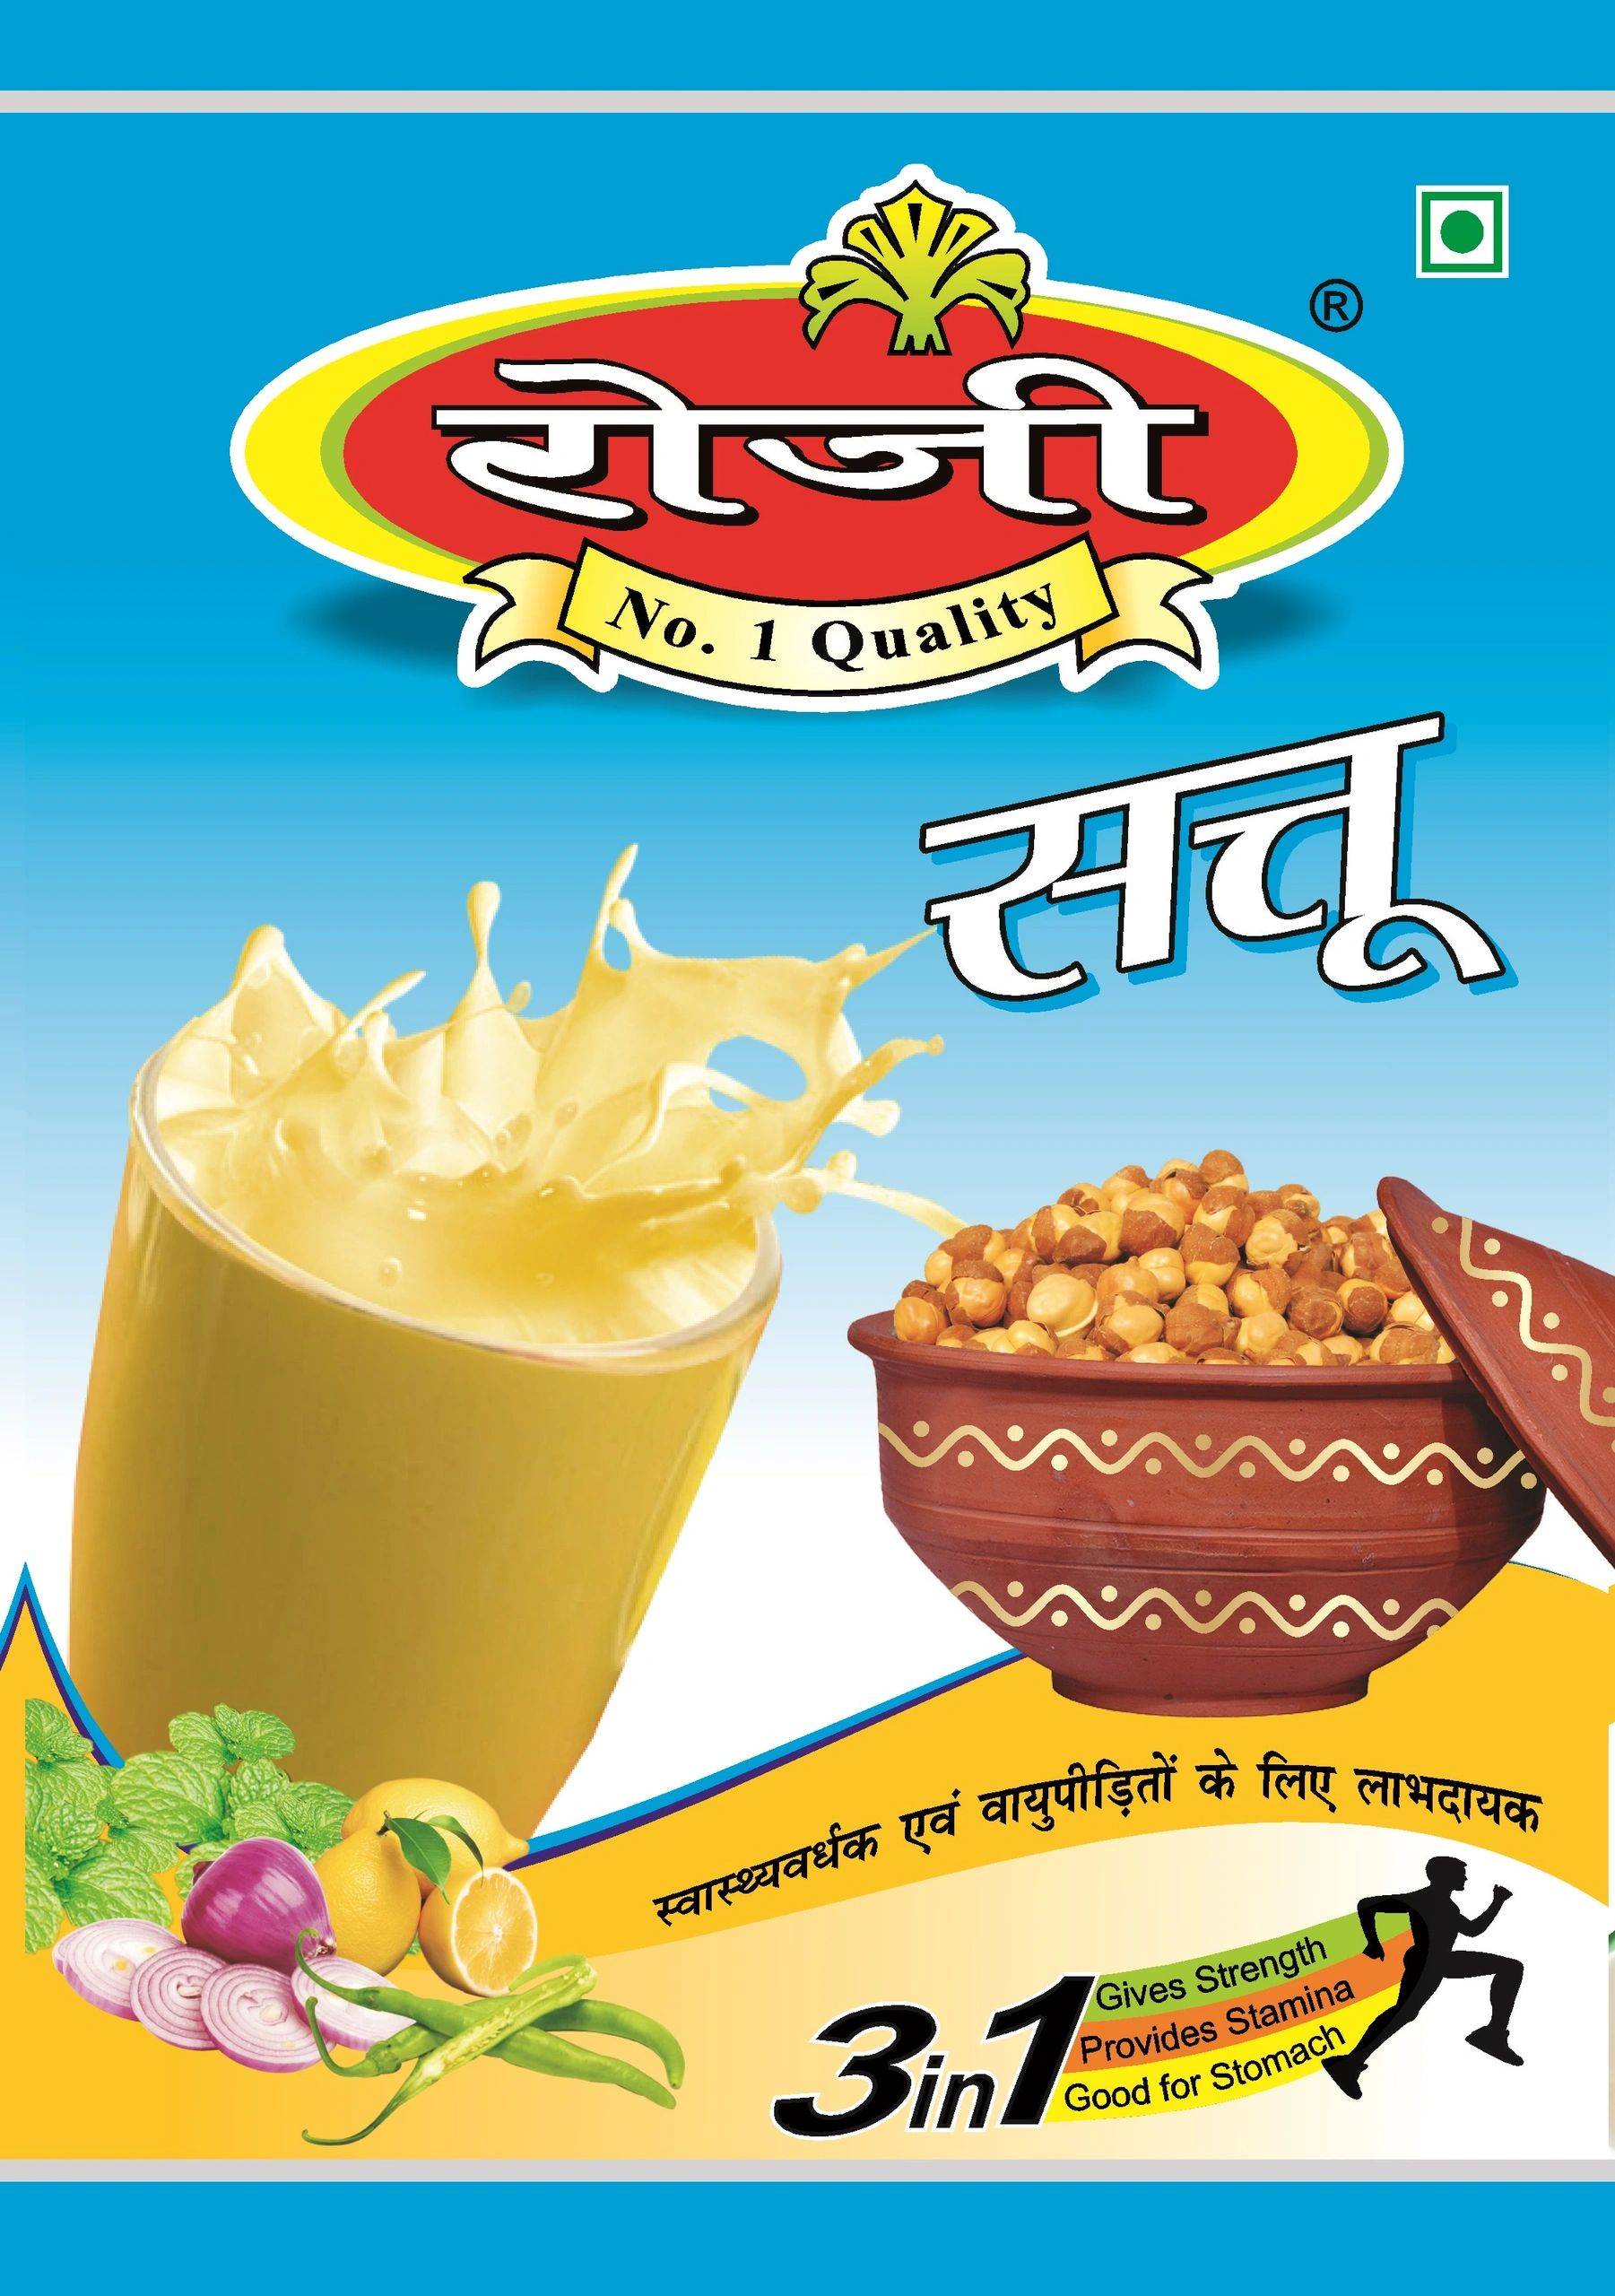 sattu gives strength ,provides stamina & good for stomach